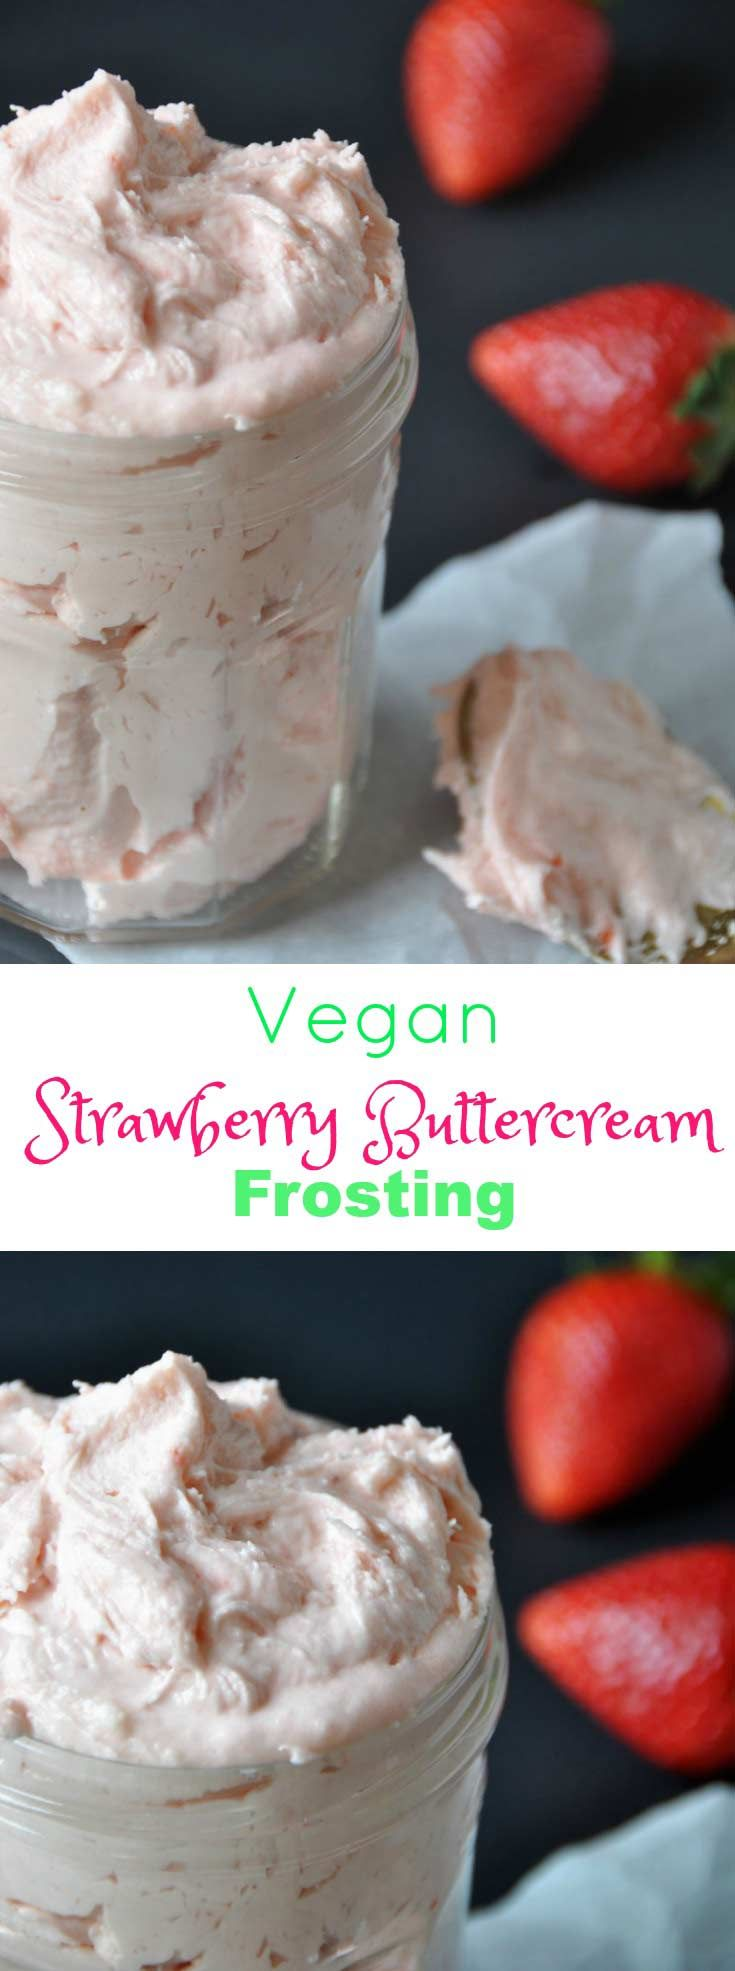 Homemade, 3 ingredient, vegan strawberry buttercream frosting! Made with fresh strawberries.